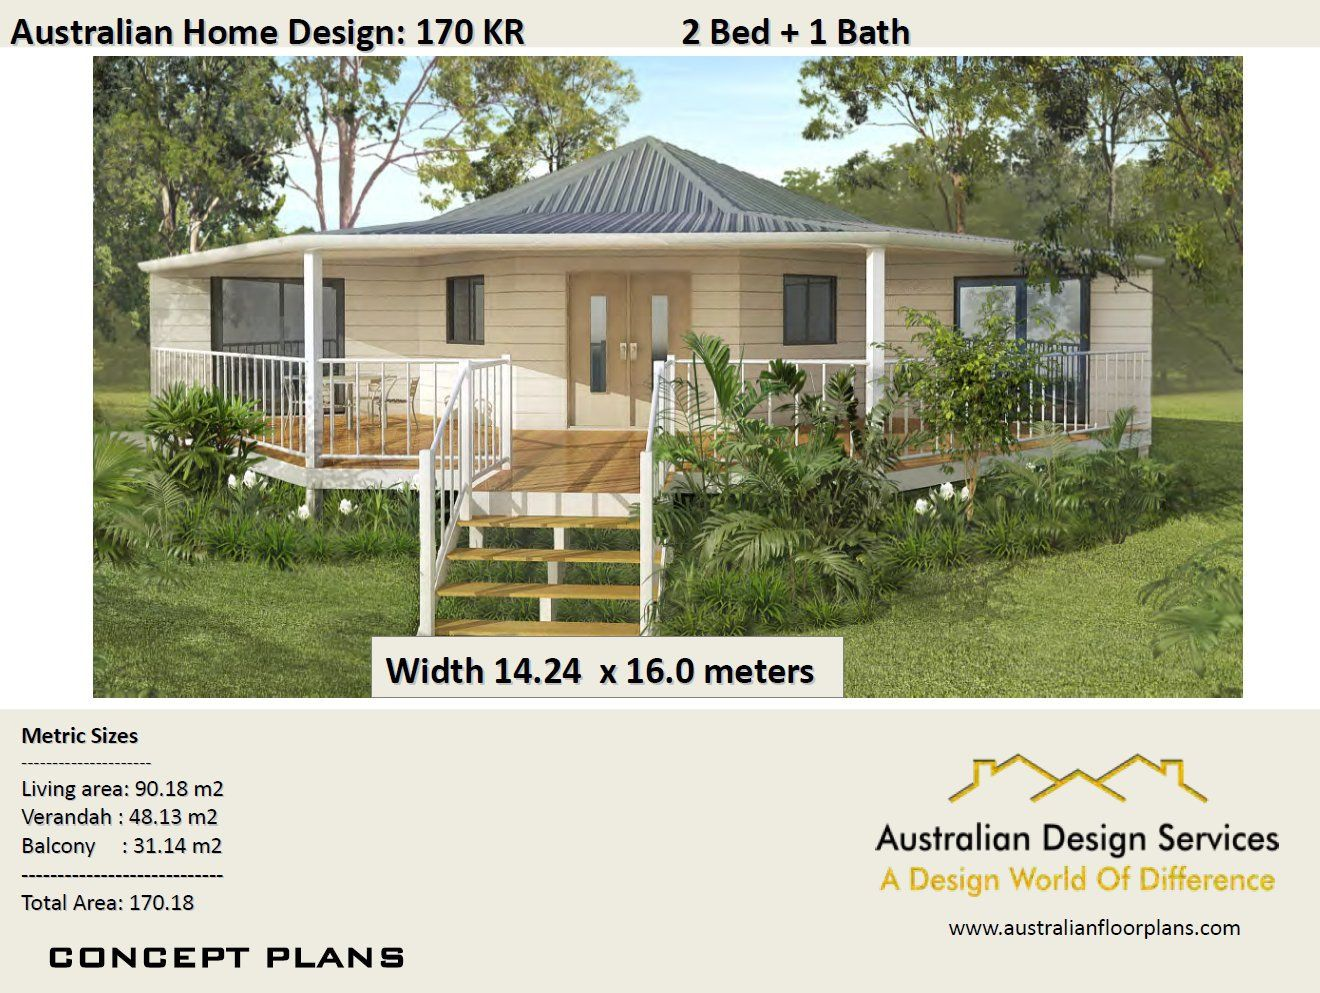 1830 Sq Feet Or 170 M2 2 Bedroom 2 Bed Granny Flat Small Etsy Small House House Design Small Room Design